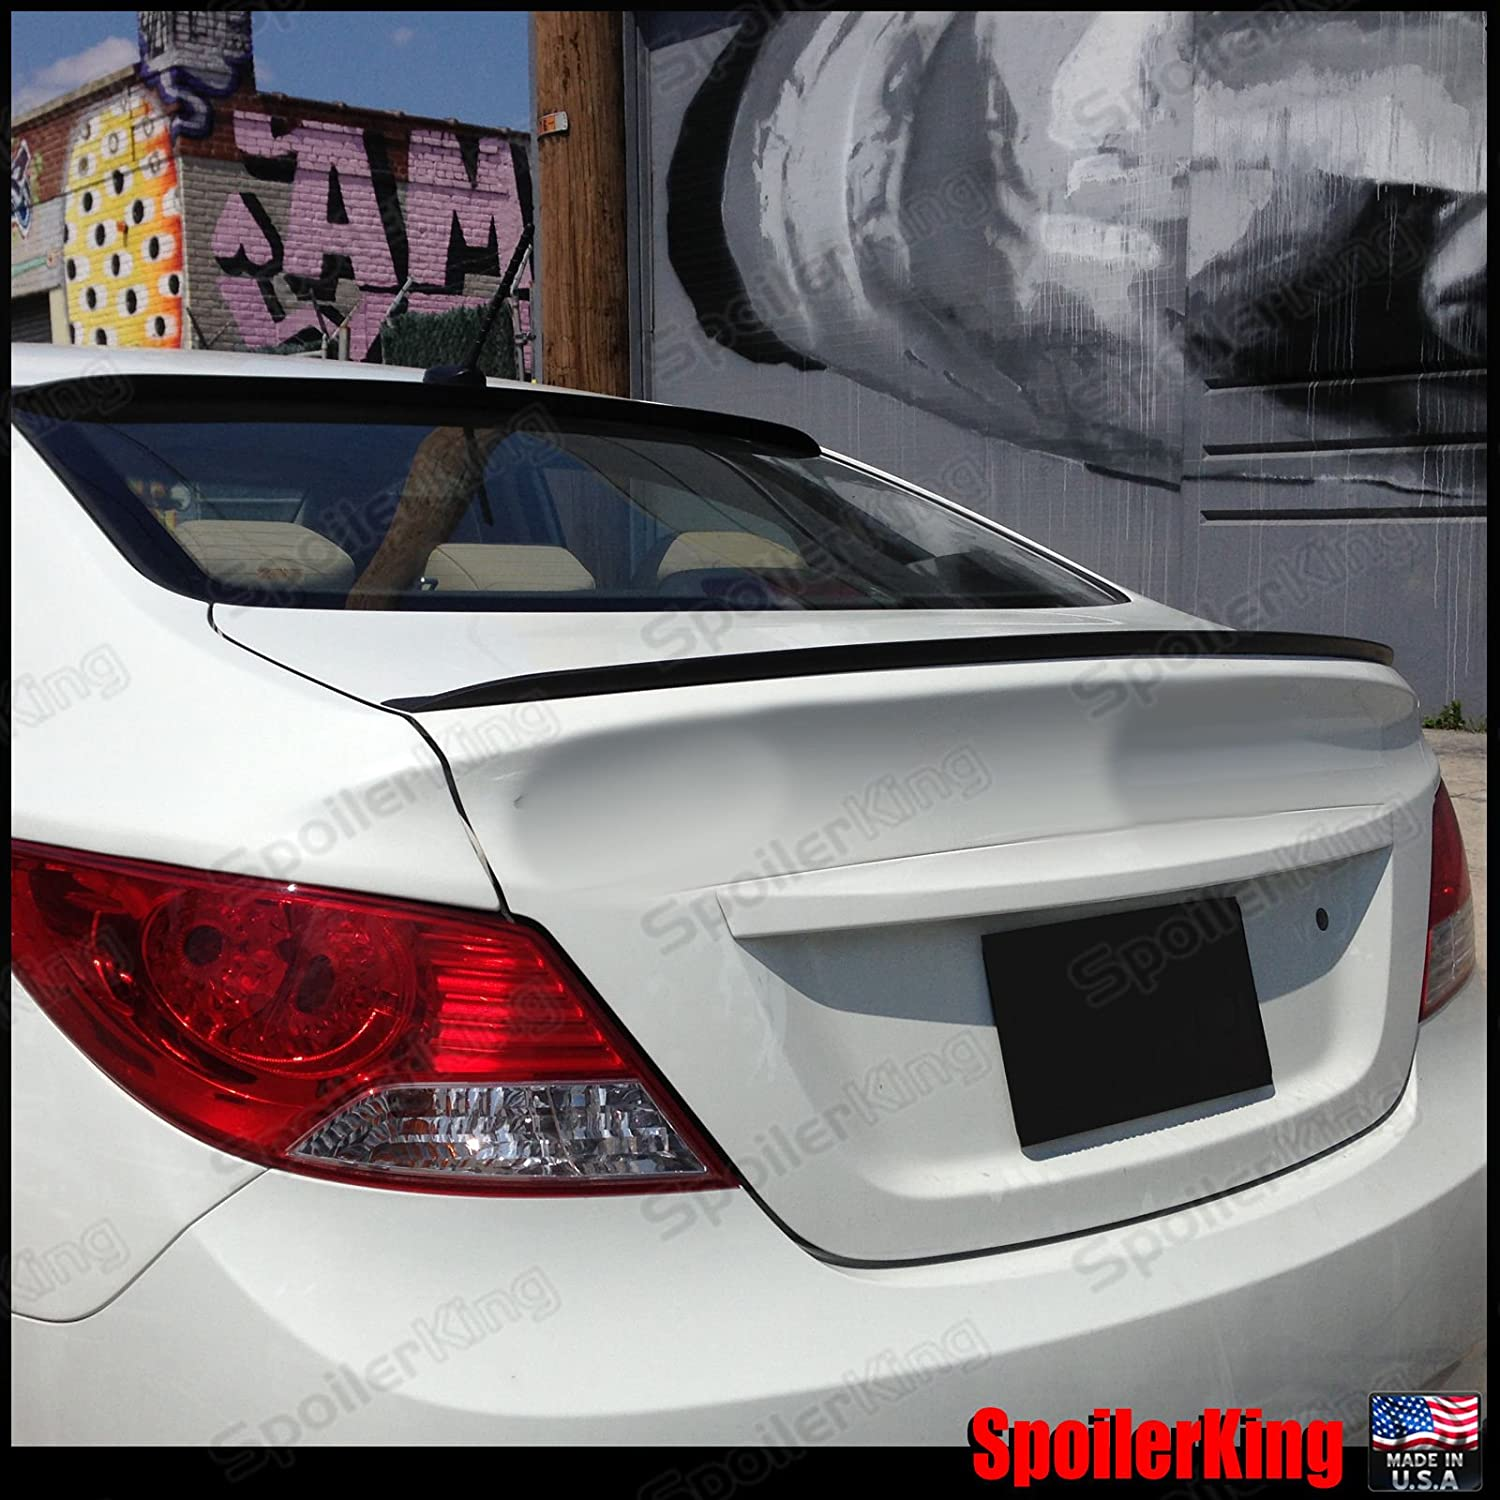 UNPAINTED REAR WING SPOILER FOR A HYUNDAI ACCENT FLUSH MOUNT 2012-2017